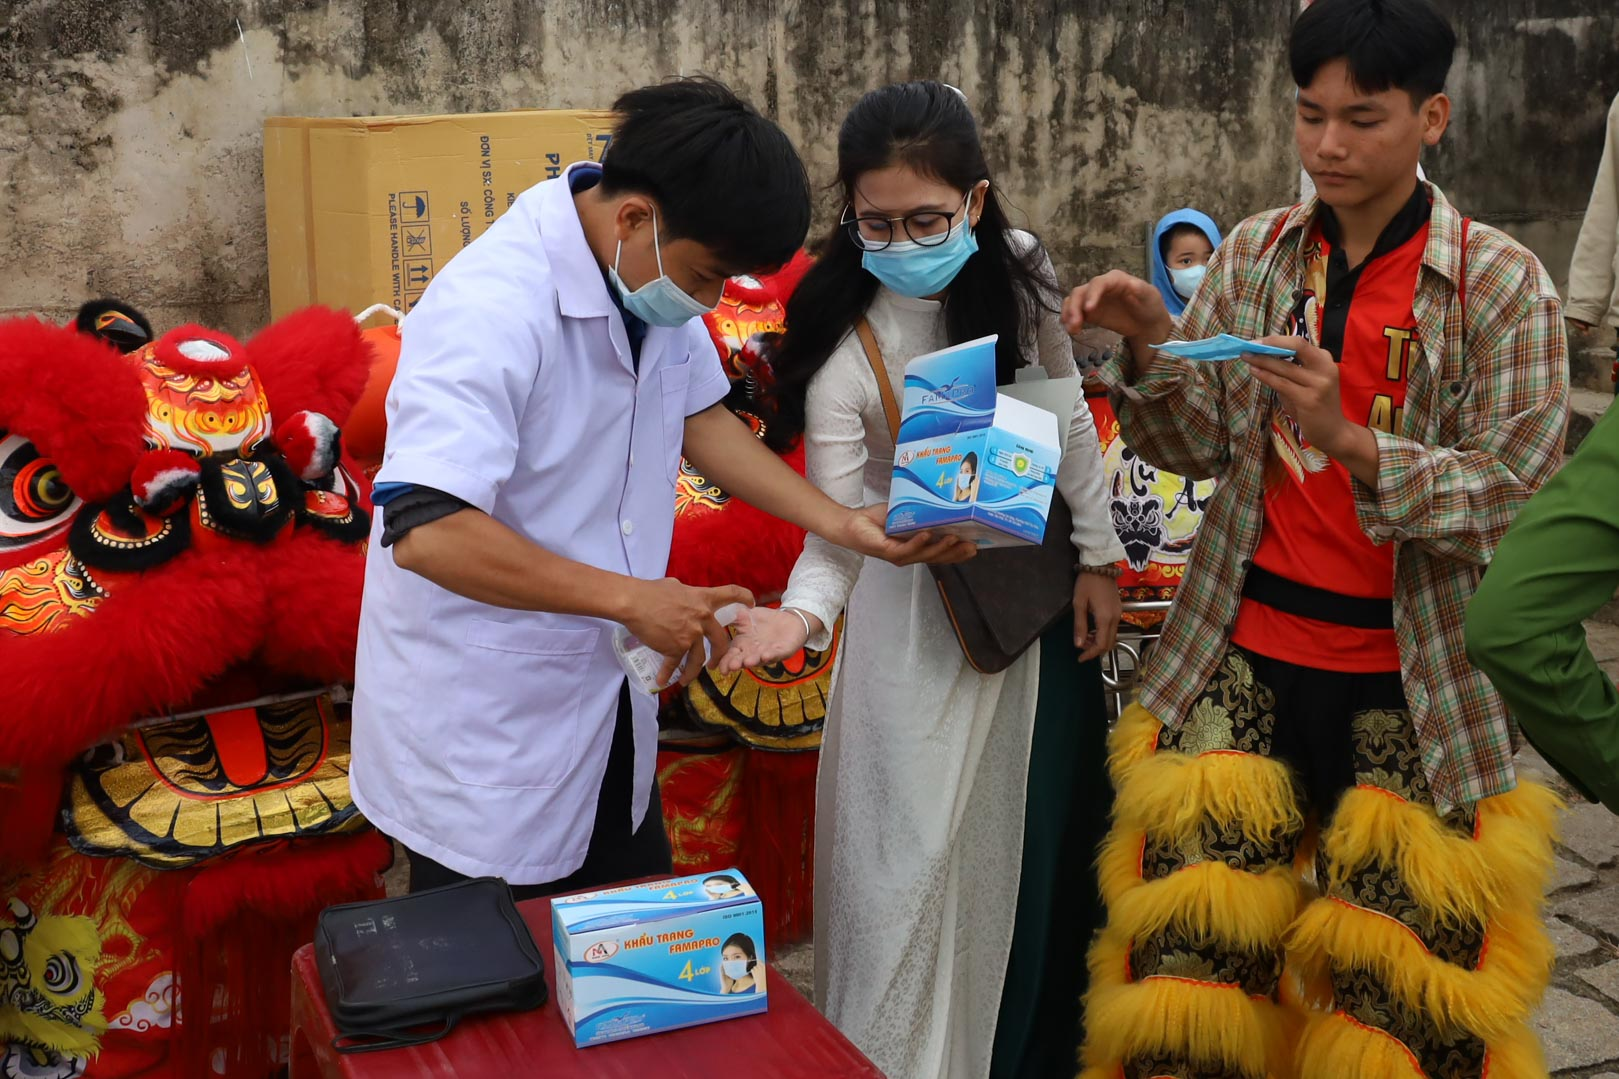 Participants wear masks and wash hands with hand sanitizer